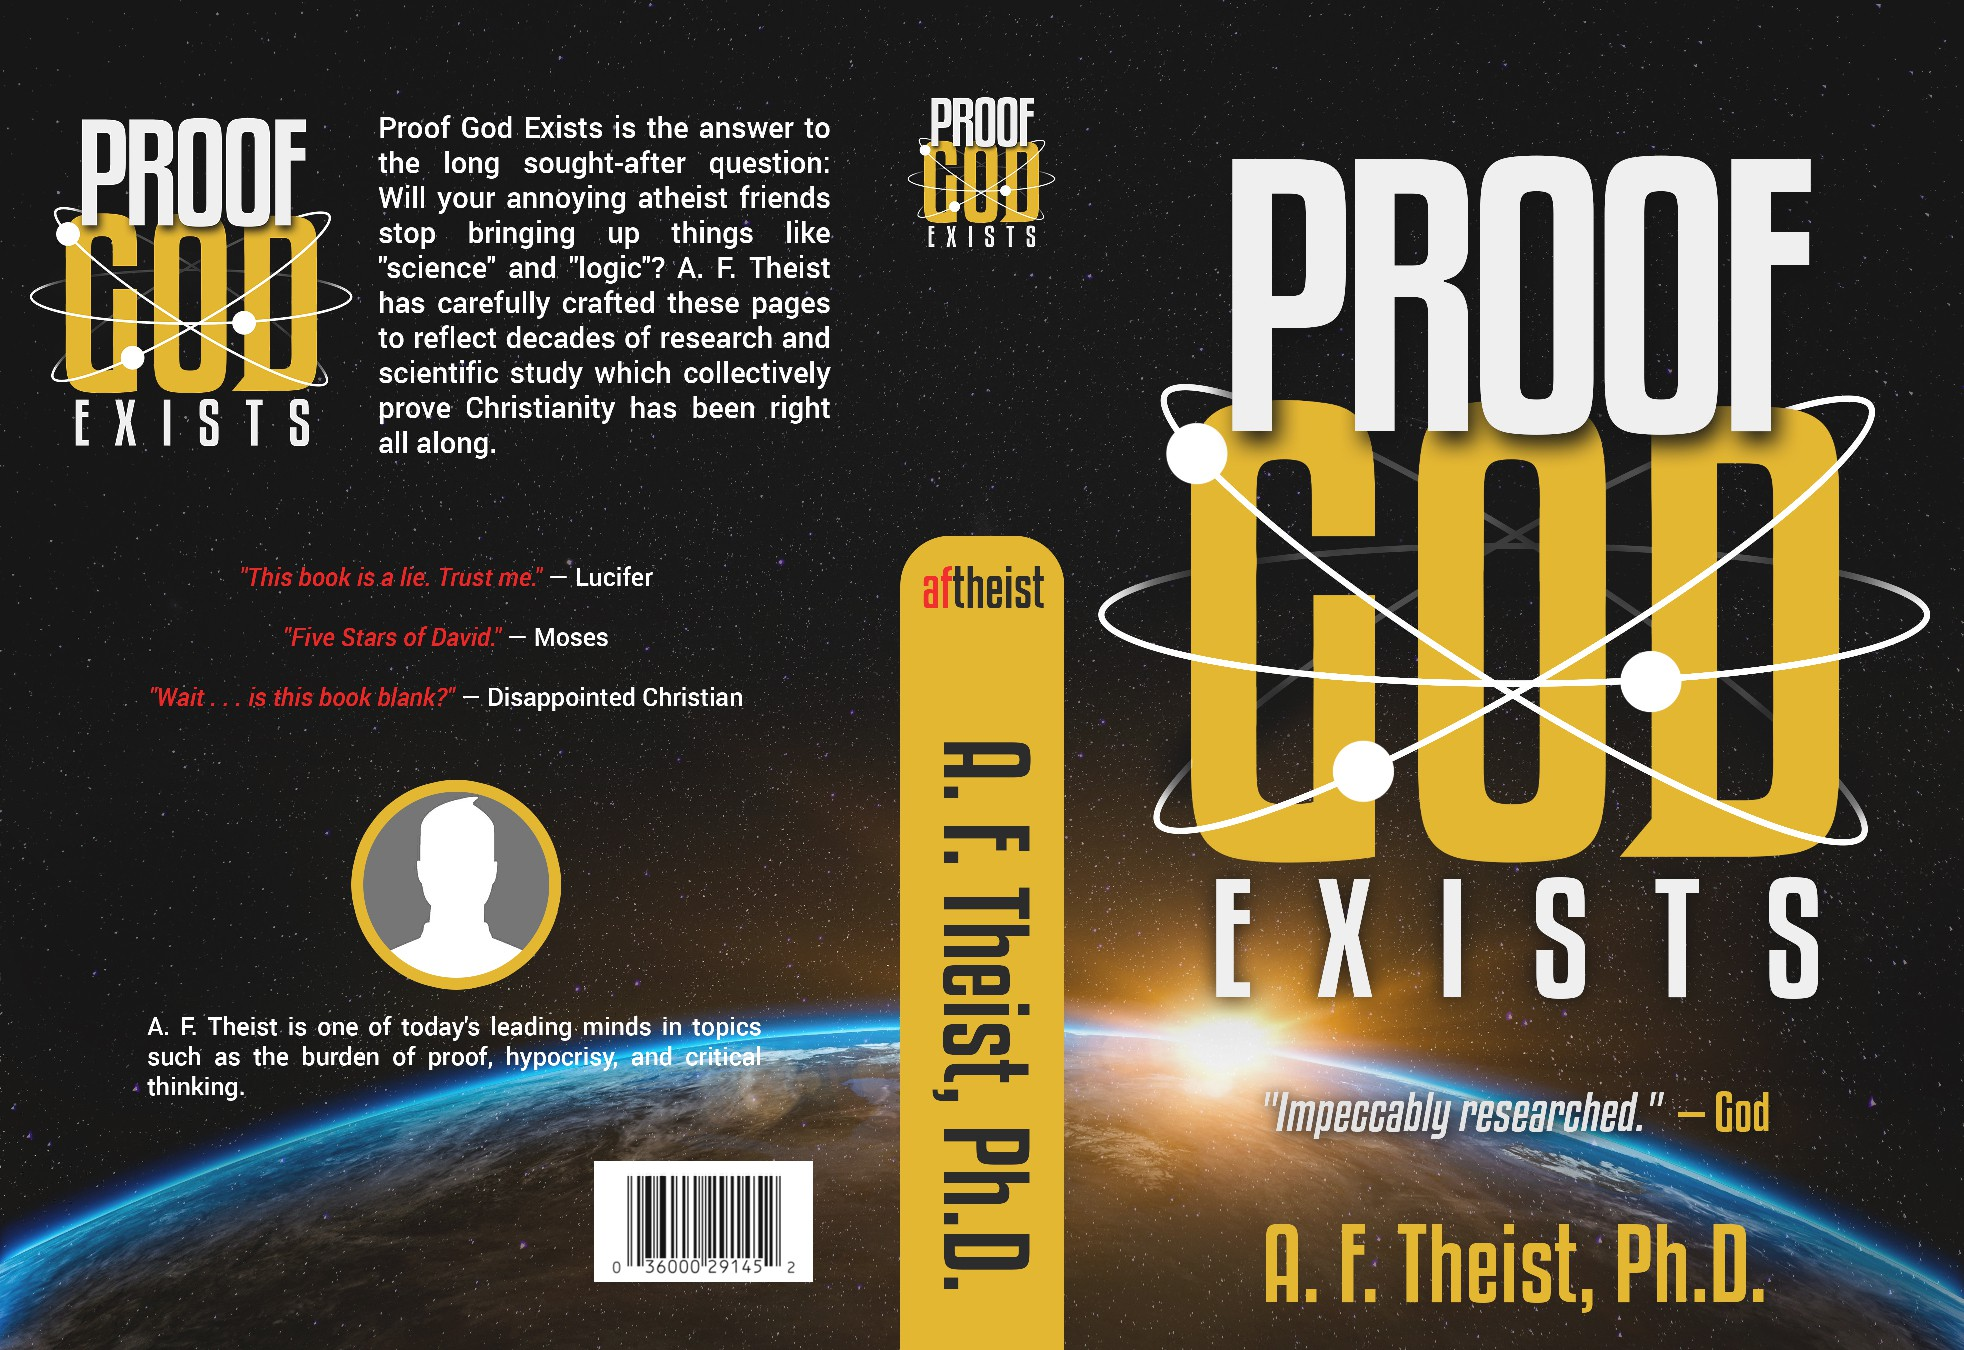 """Proof God Exists""—this book title is ironic!"